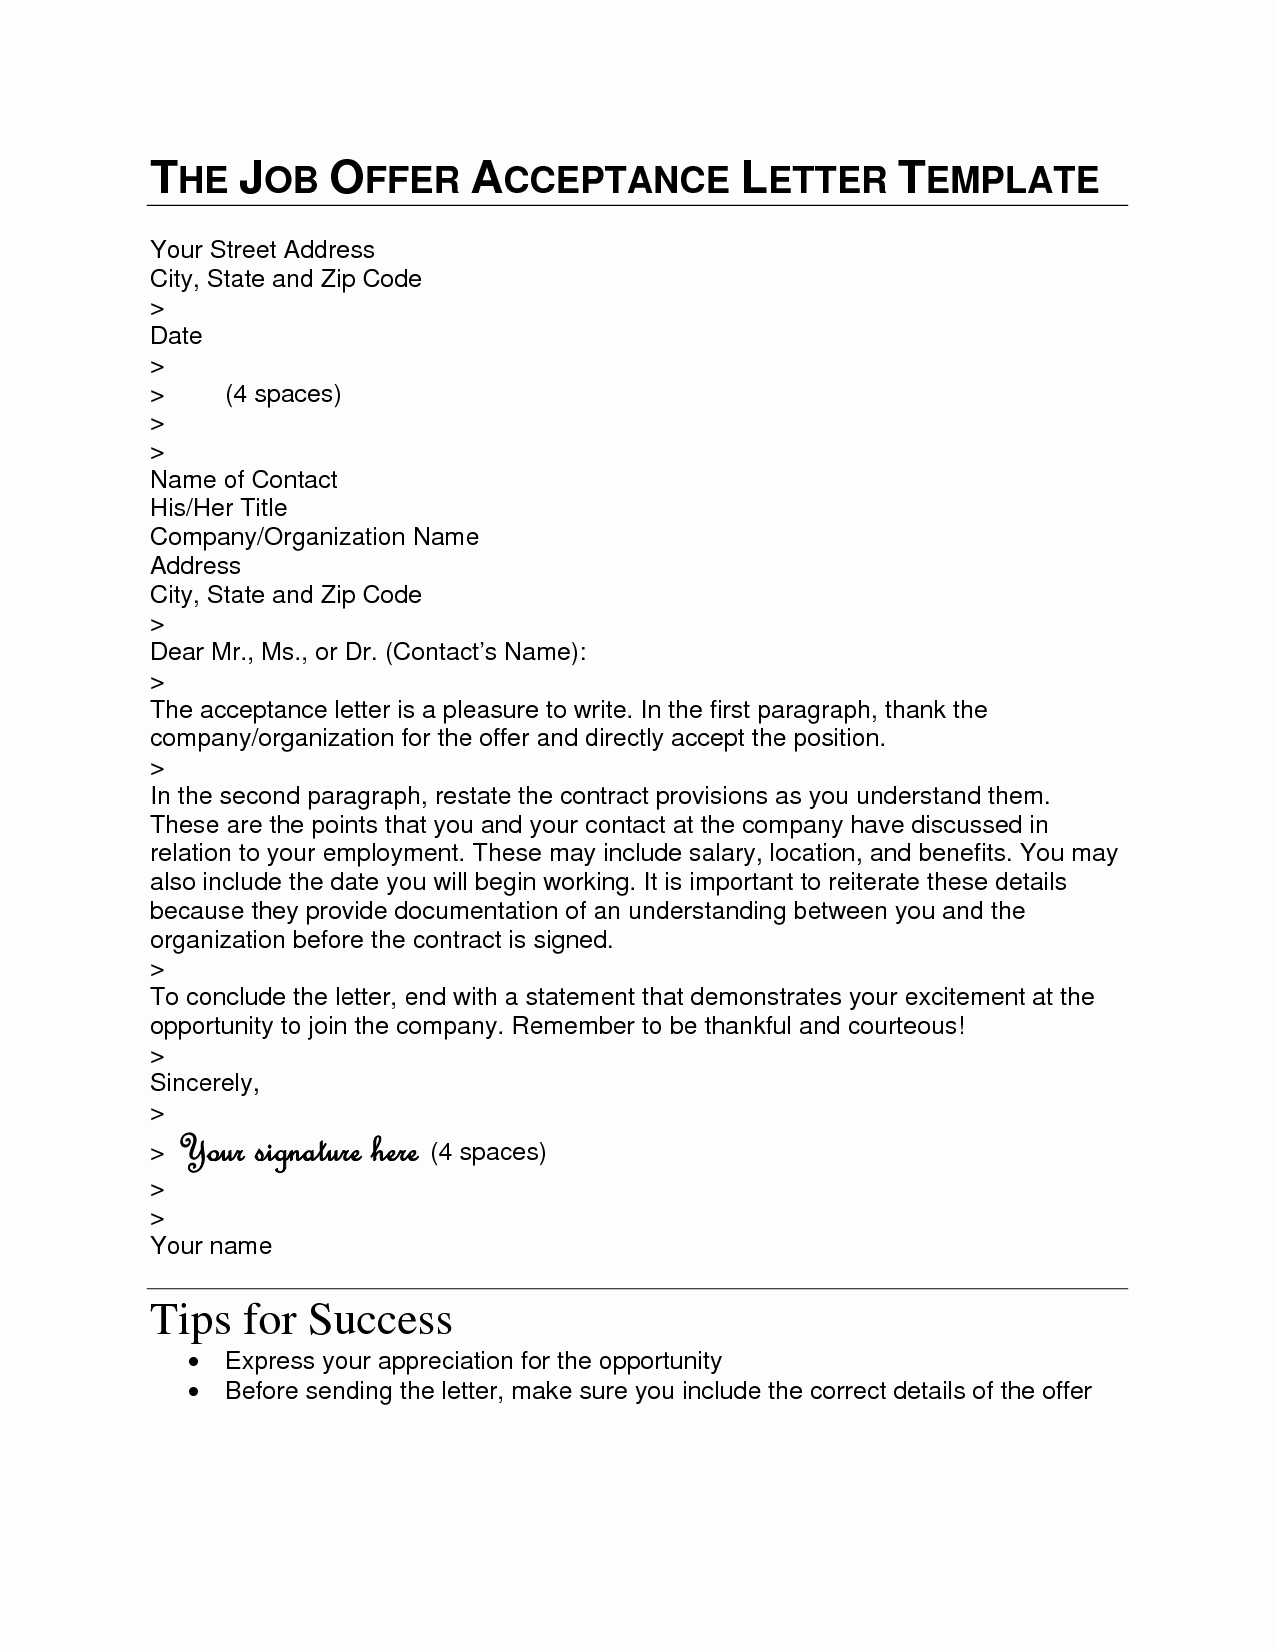 Reply Letter format Best Template Collection